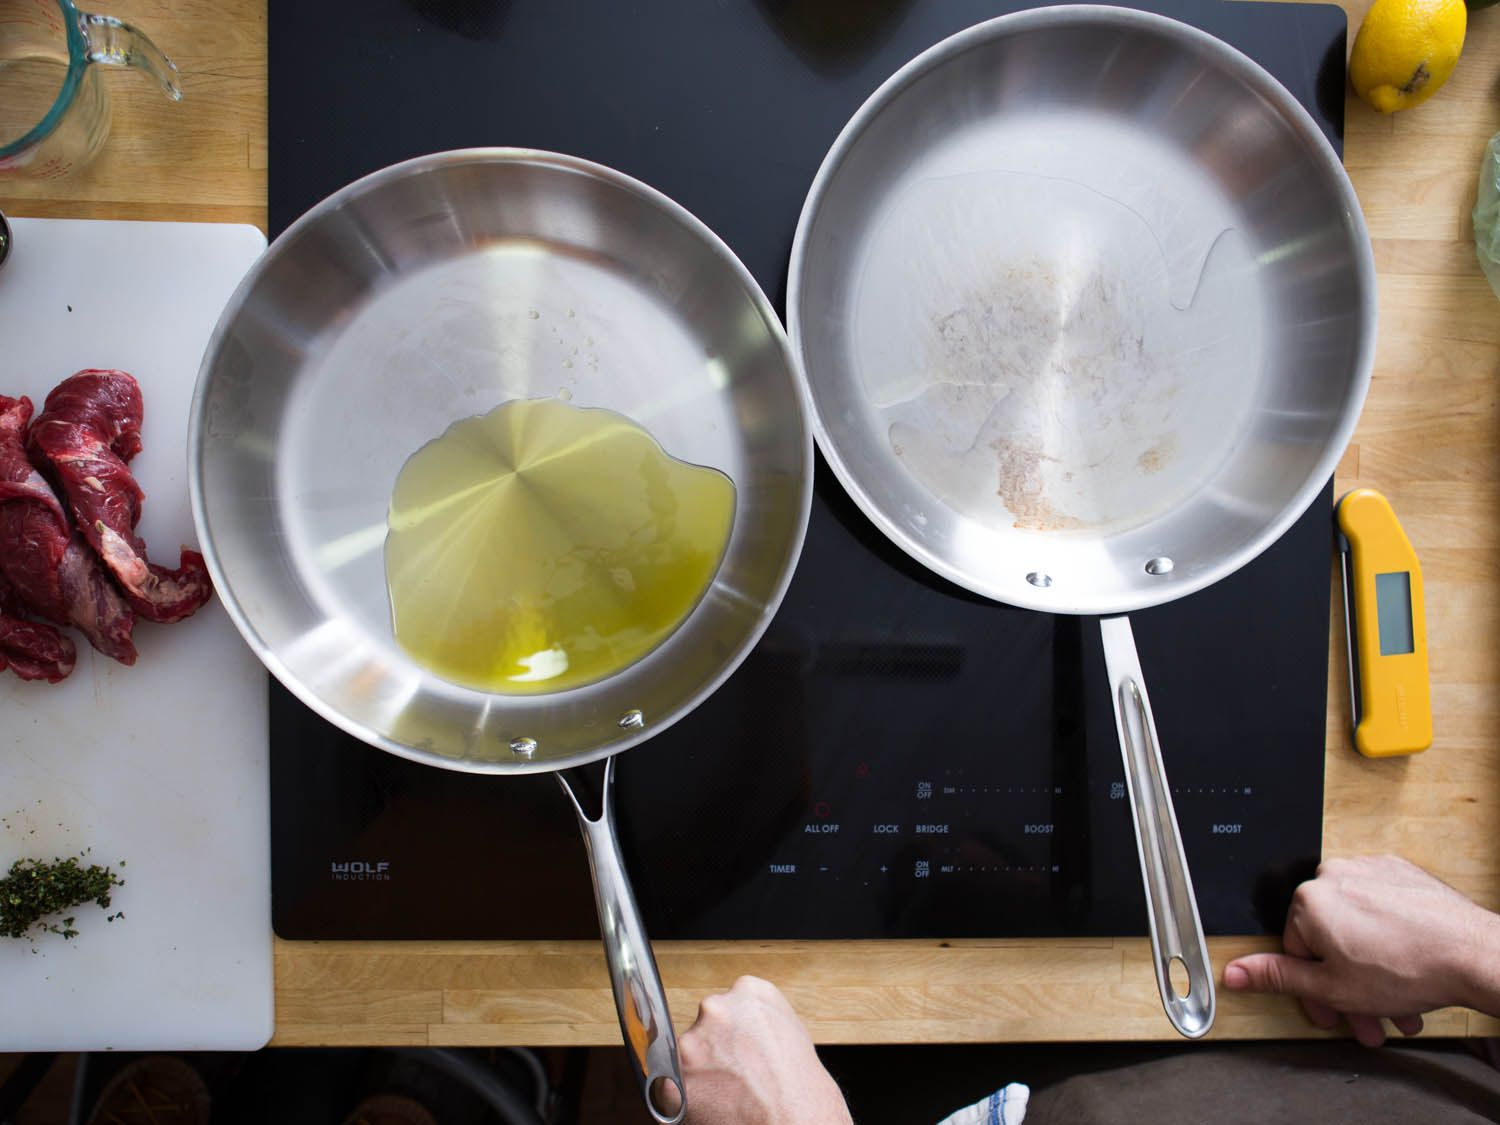 20150320-cooking-olive-oil-vicky-wasik-5.jpg